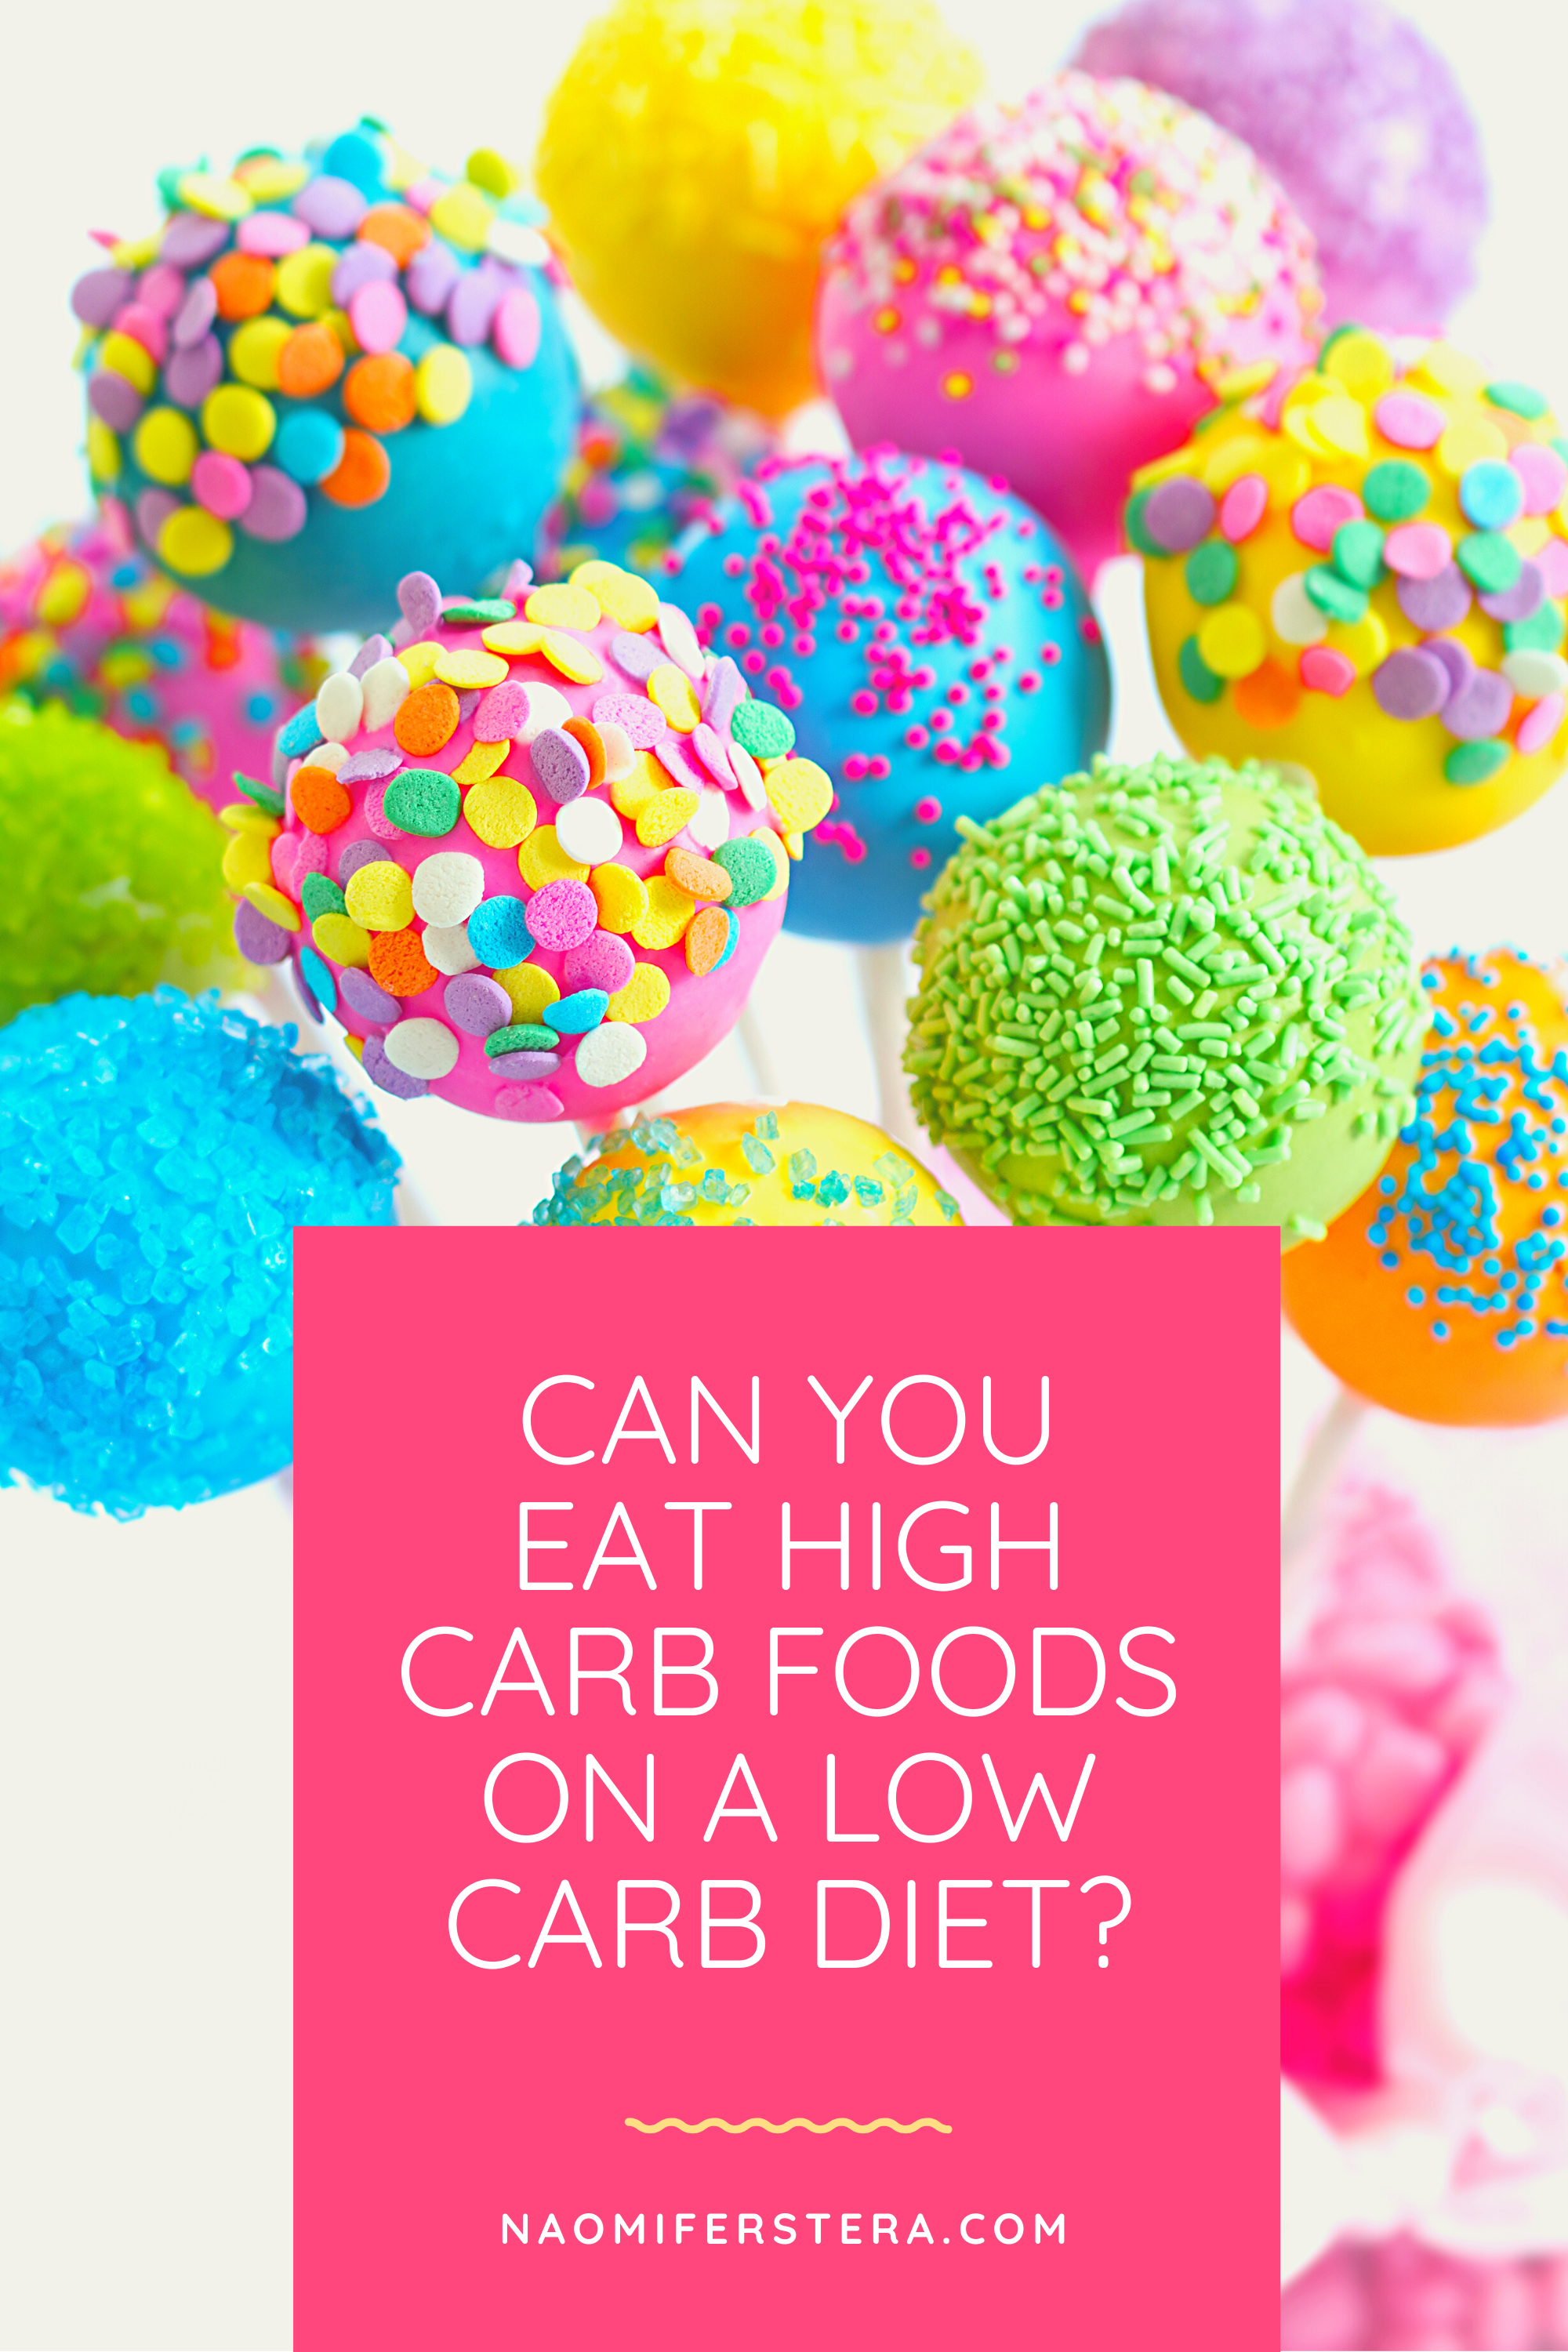 Can you eat high carb foods on a low carb diet?